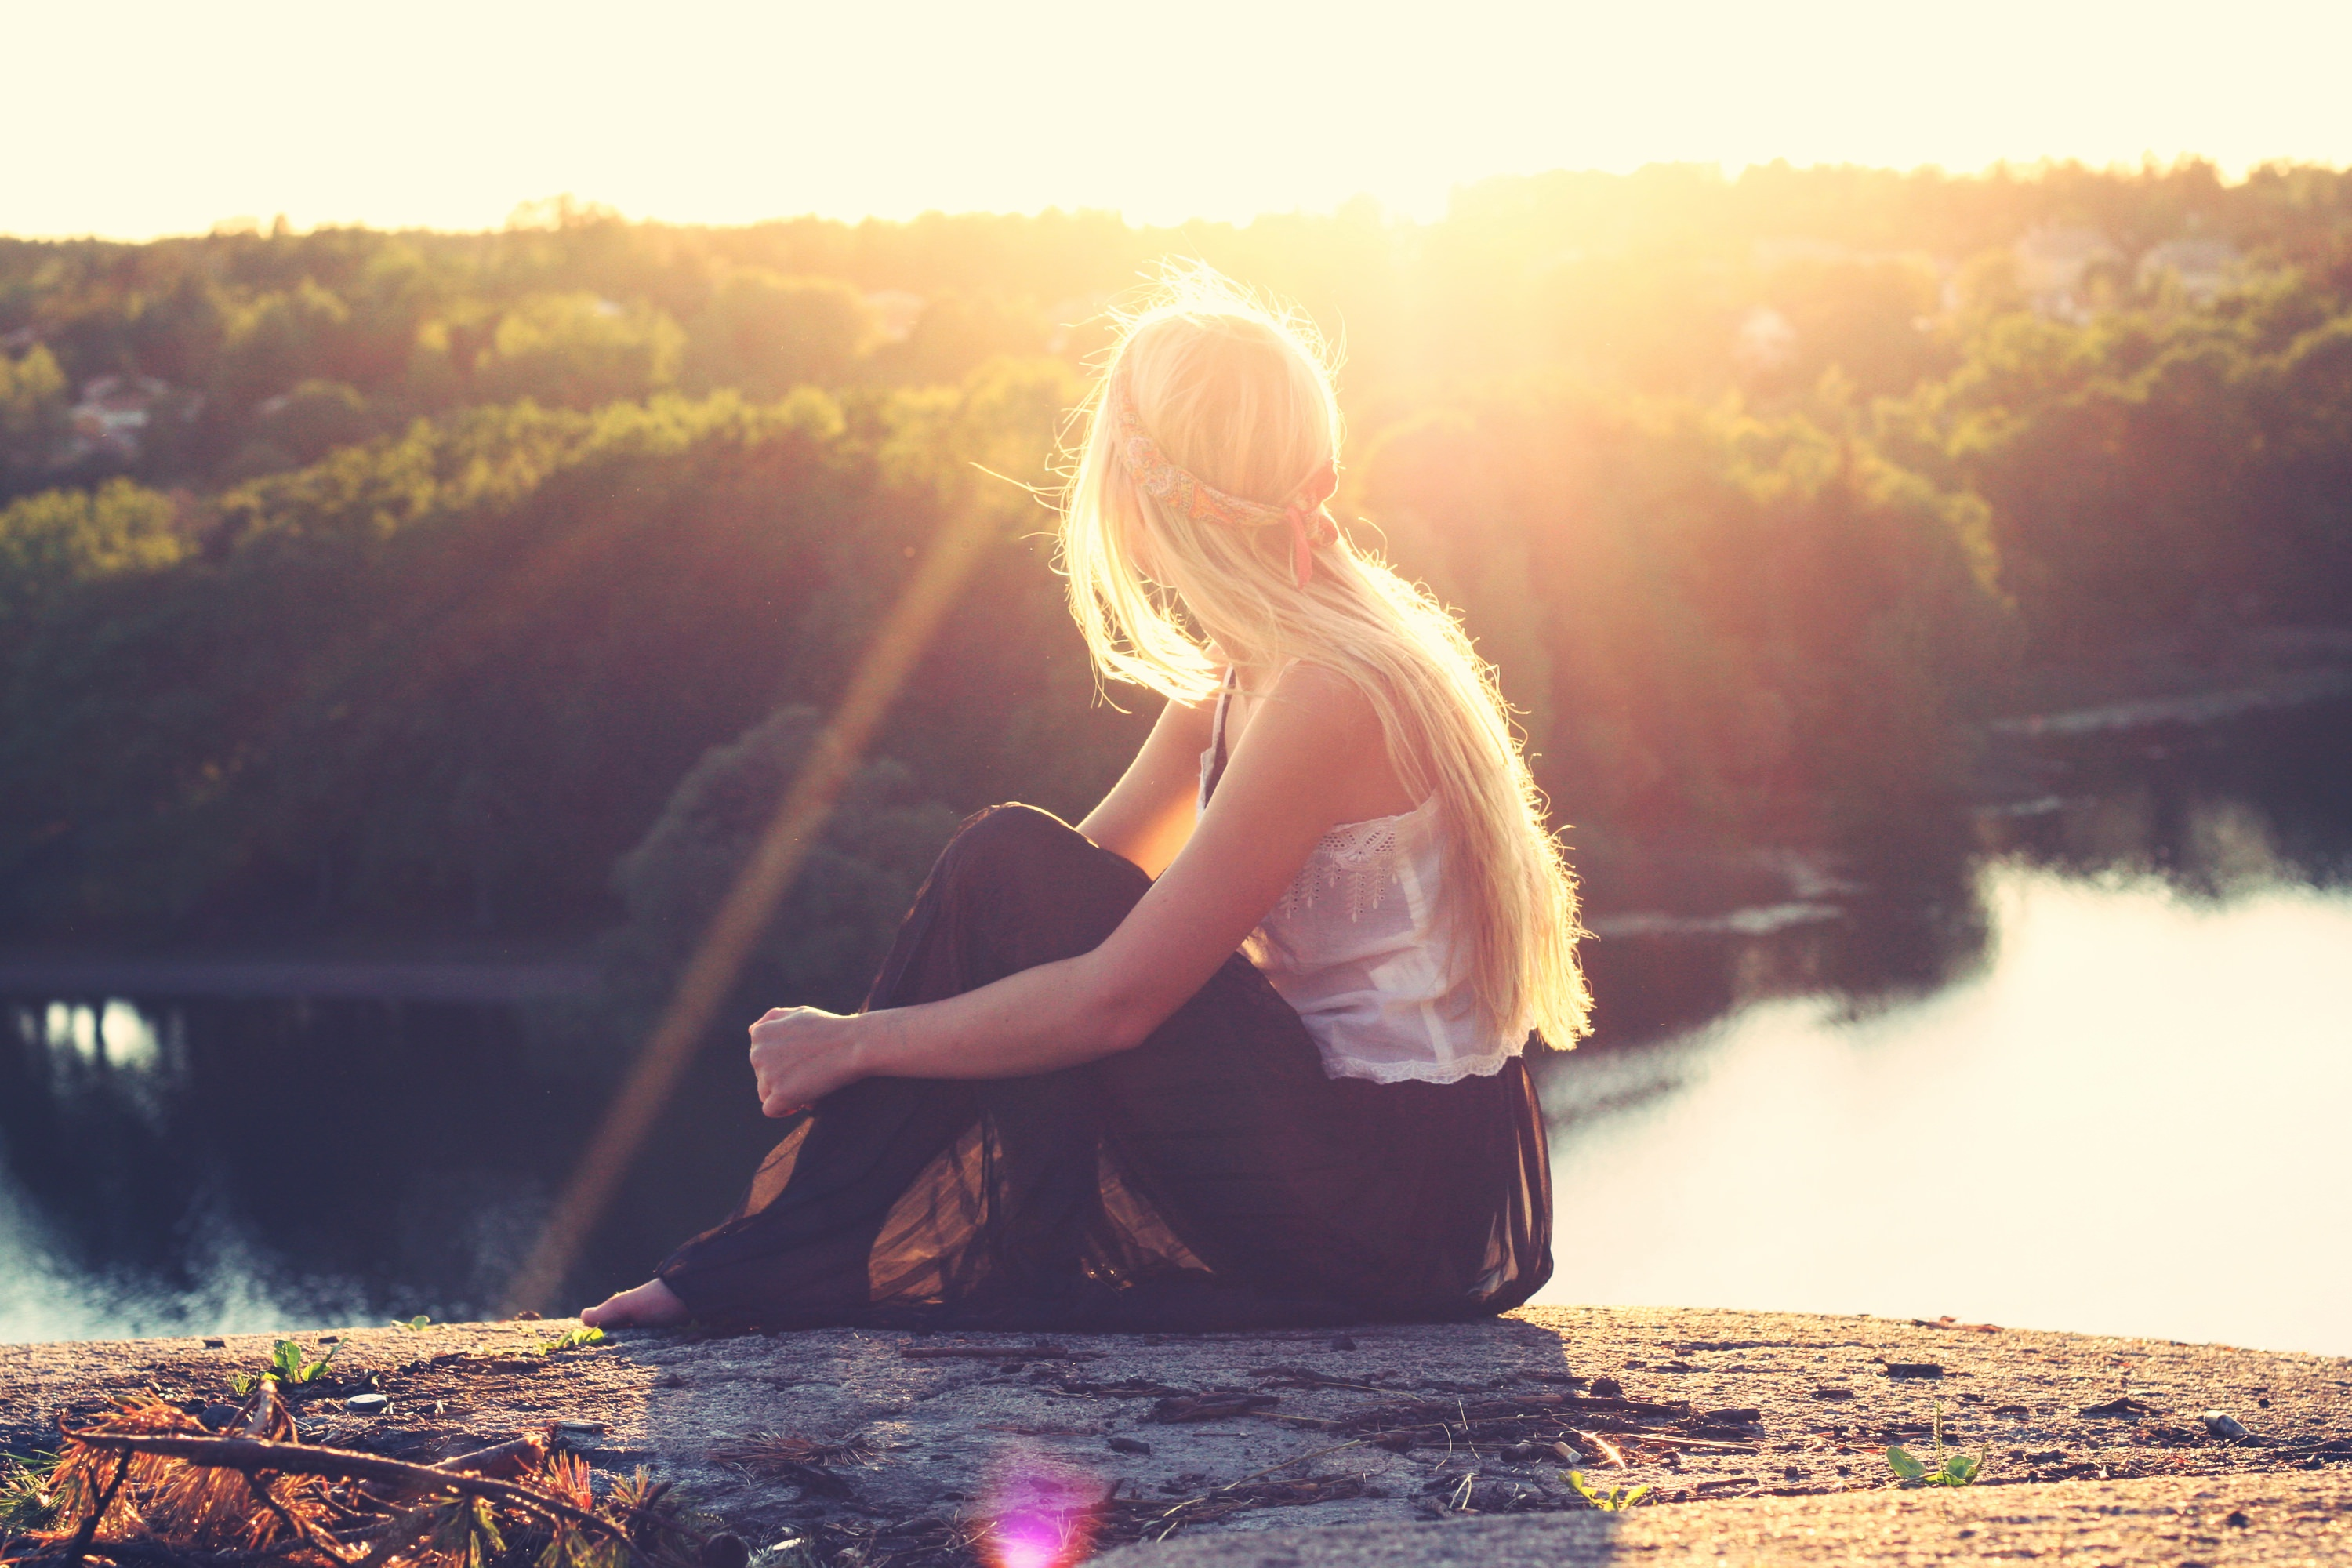 girl-with-long-blonde-hair-looking-out-over-lake-in-the-sunset